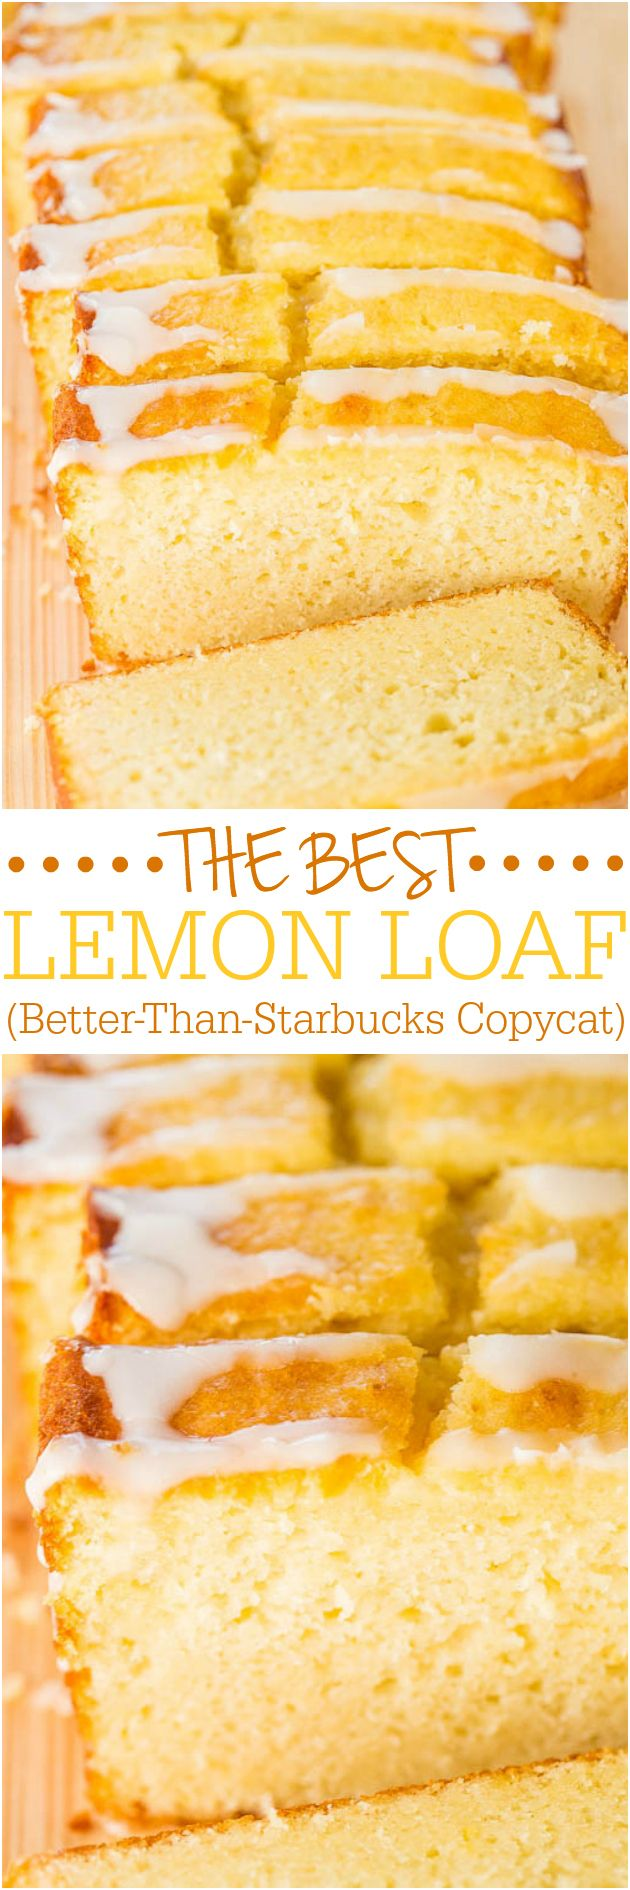 The Best Lemon Loaf (Better-Than-Starbucks Copycat) - Took years but I finally…